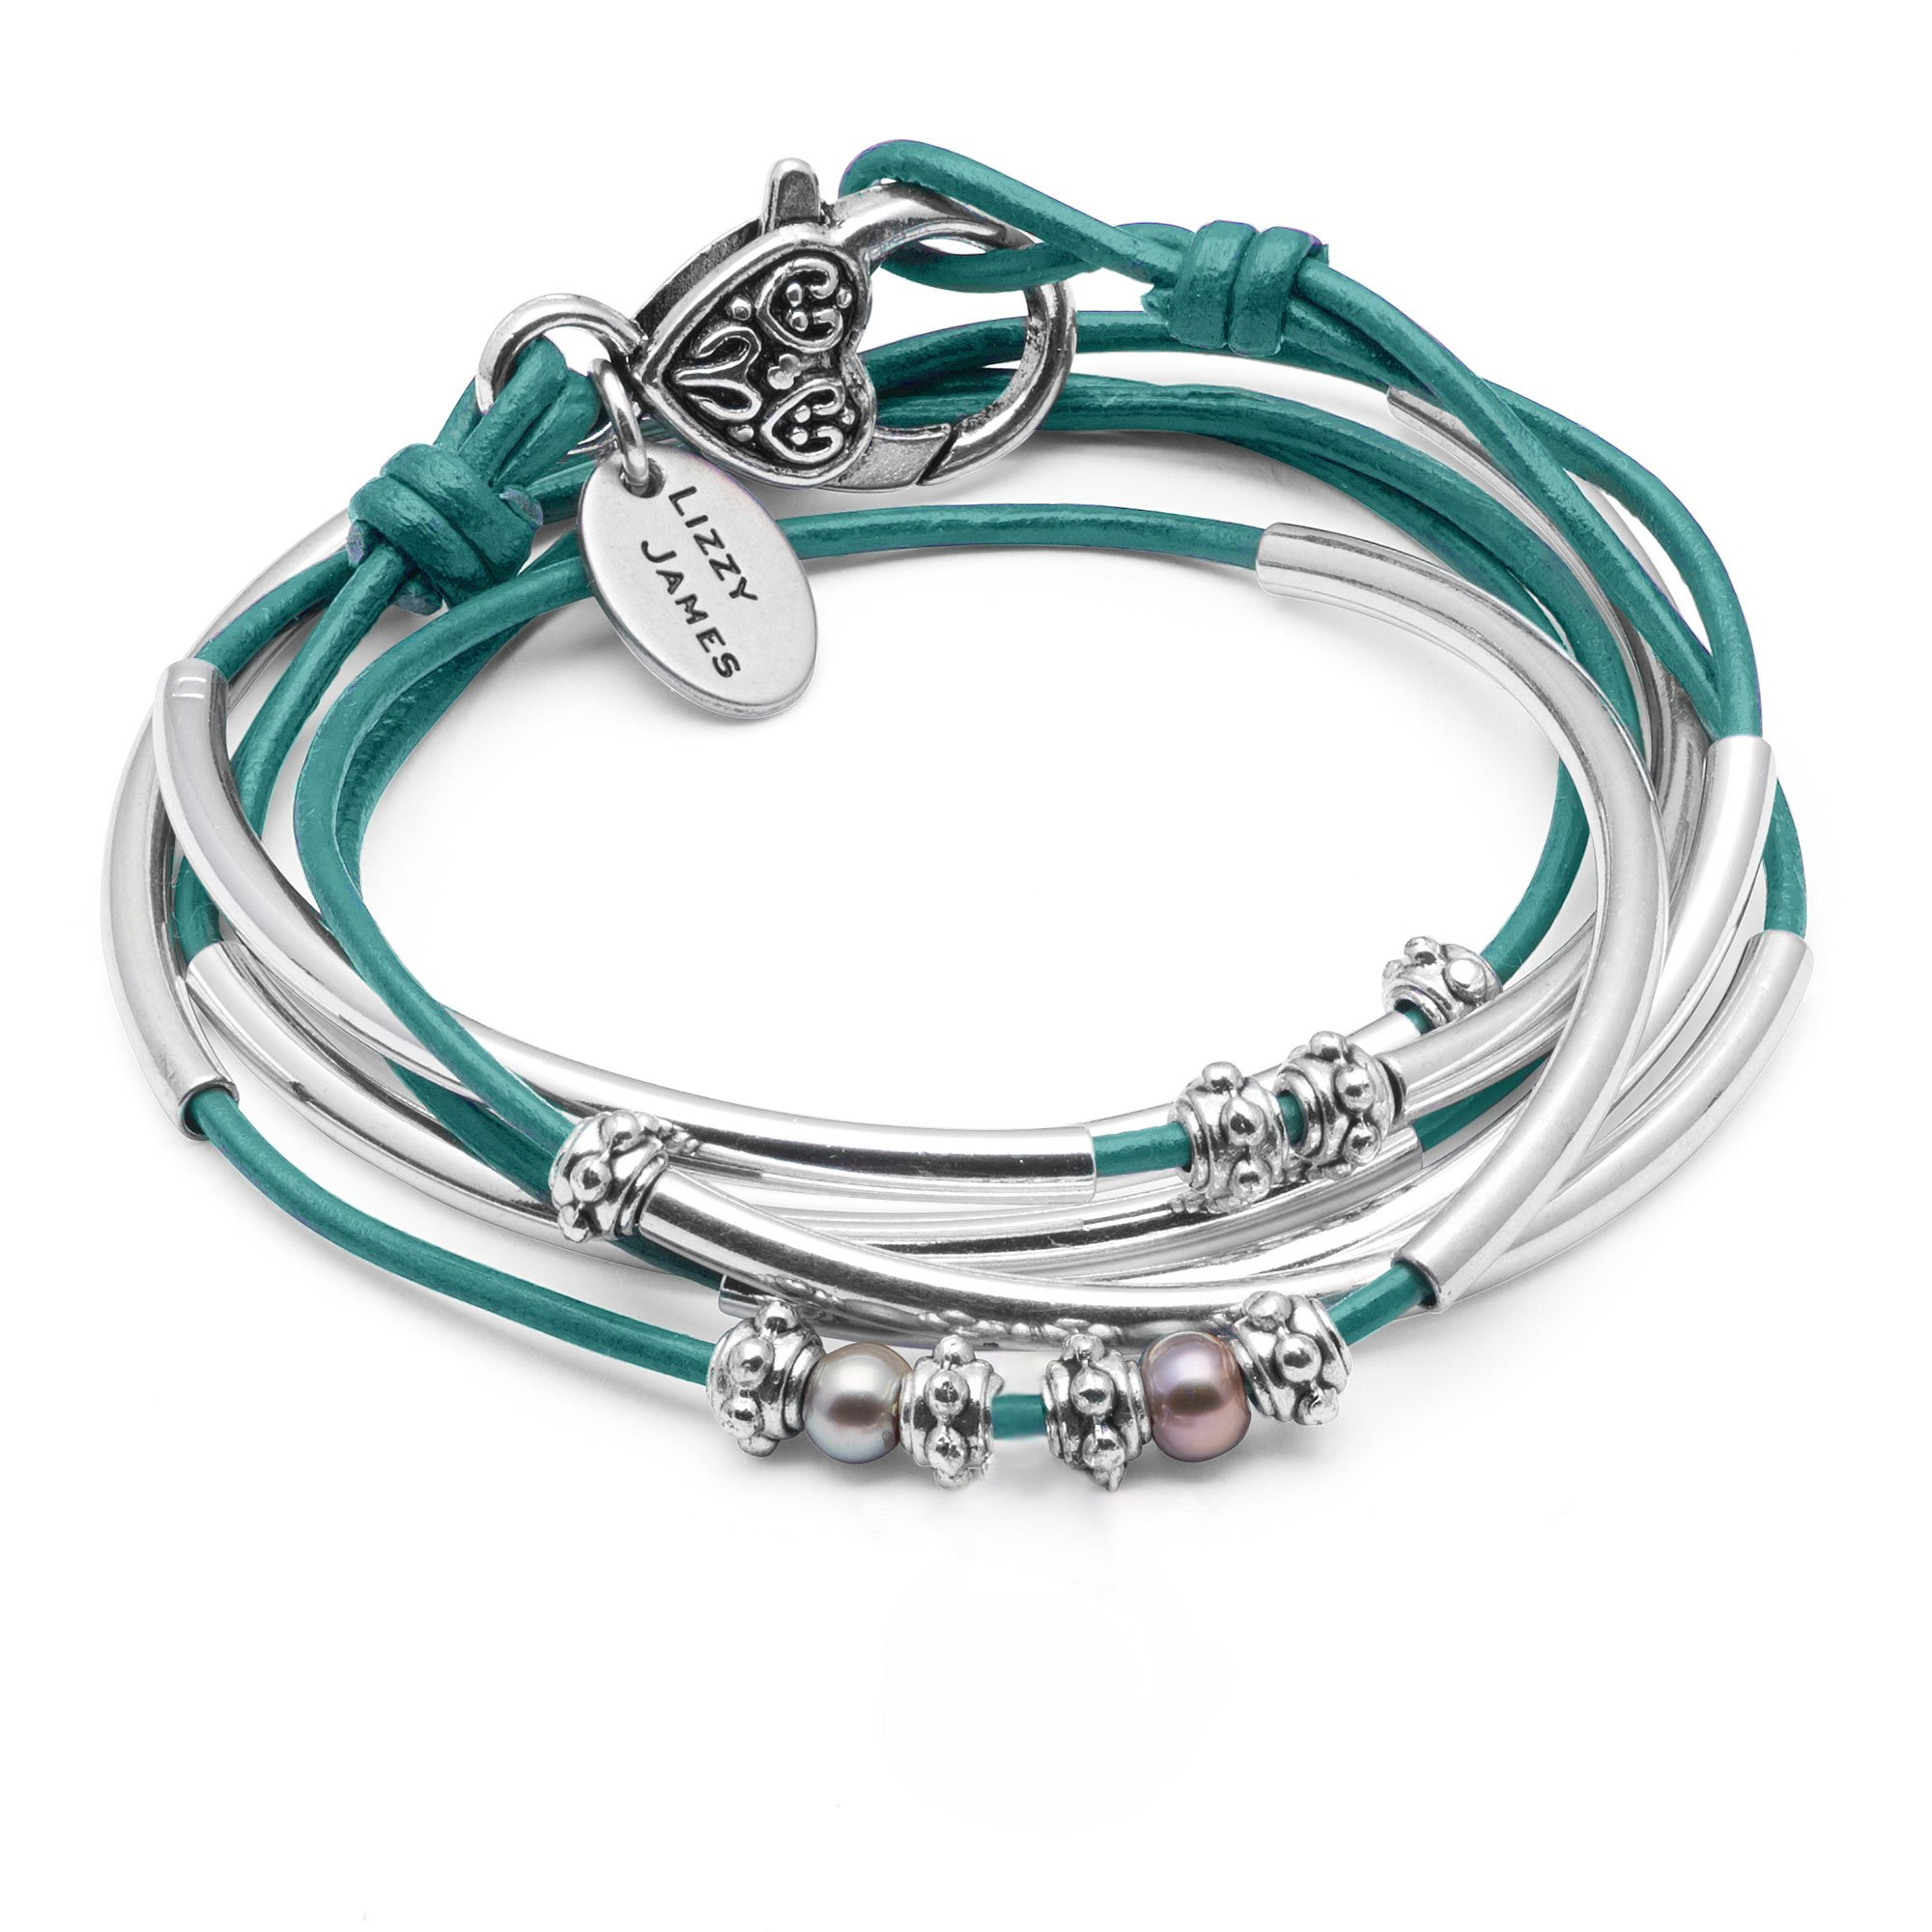 Lizzy James Charmer Wrap Bracelet Necklace in Silver plate and Metallic Teal Leather with Small Freshwater Pearls (LARGE)